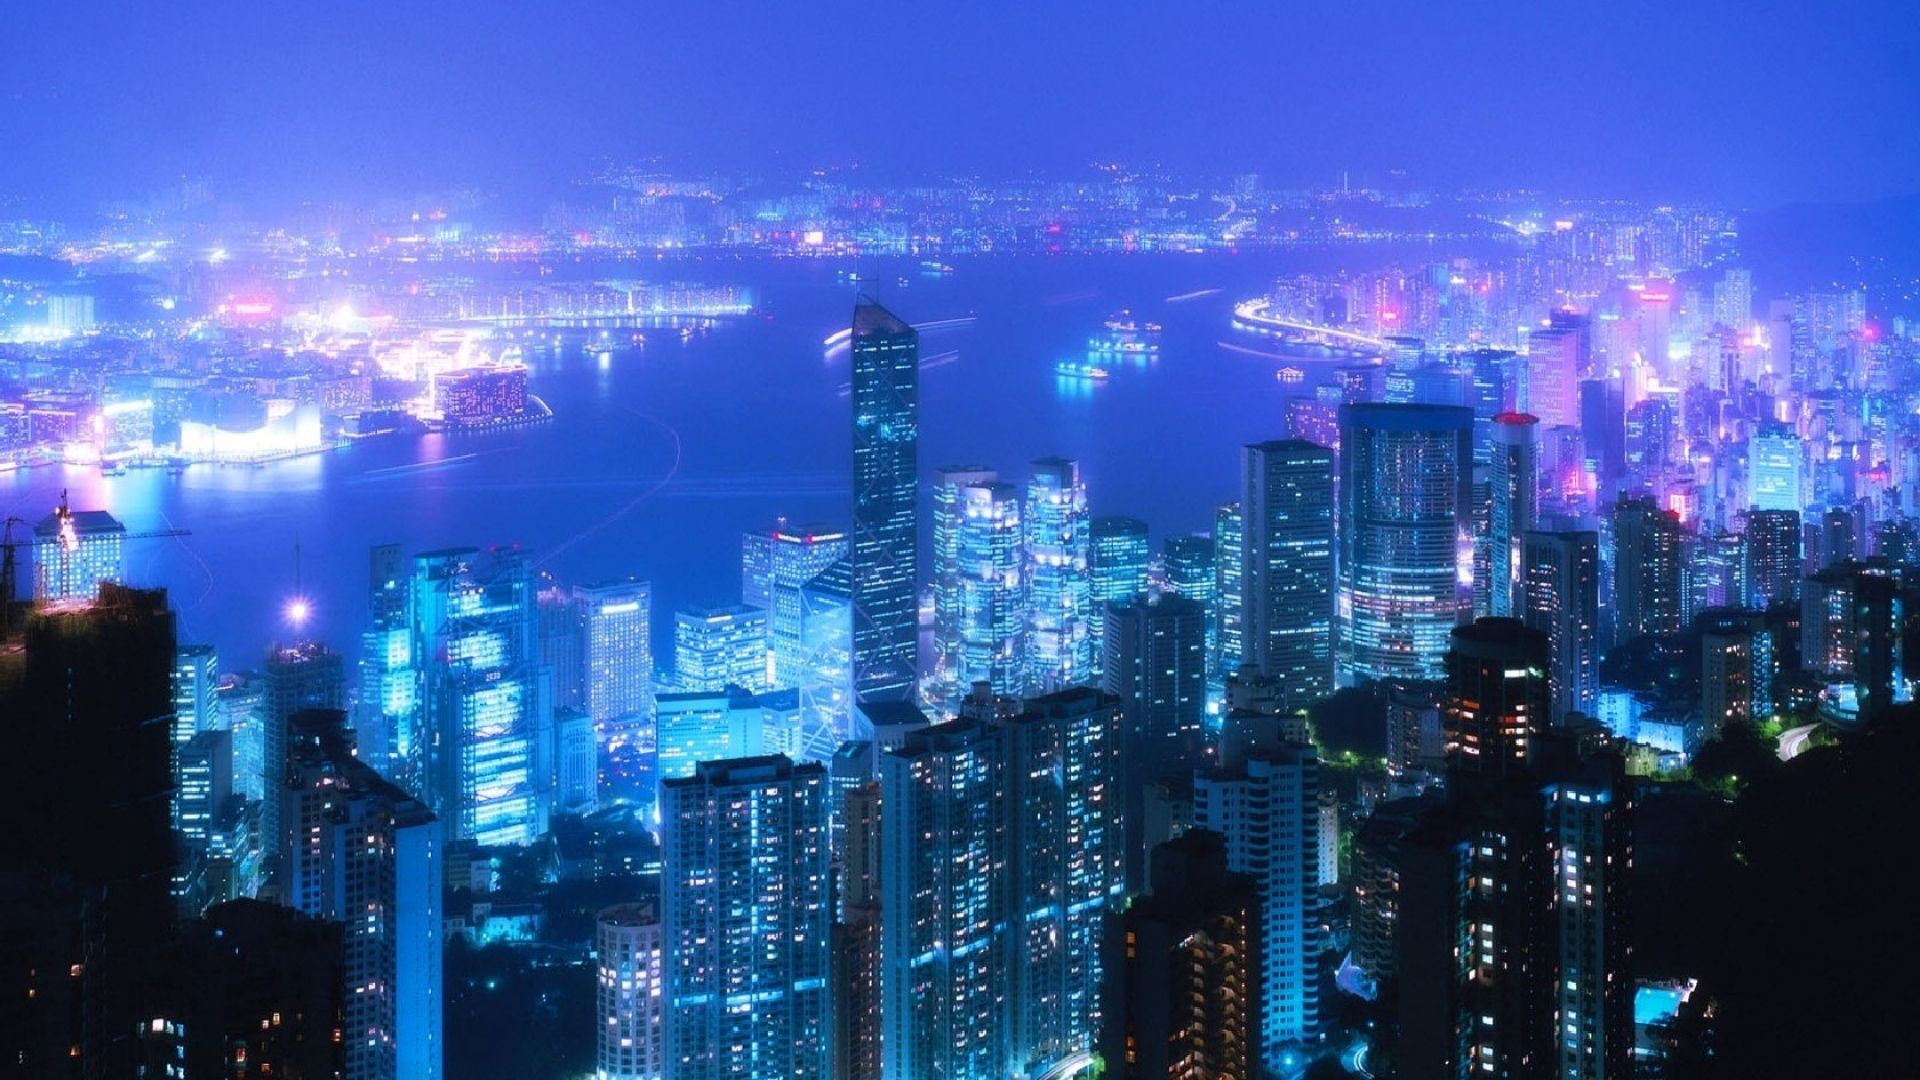 City At Night Wallpapers Top Free City At Night Backgrounds Wallpaperaccess